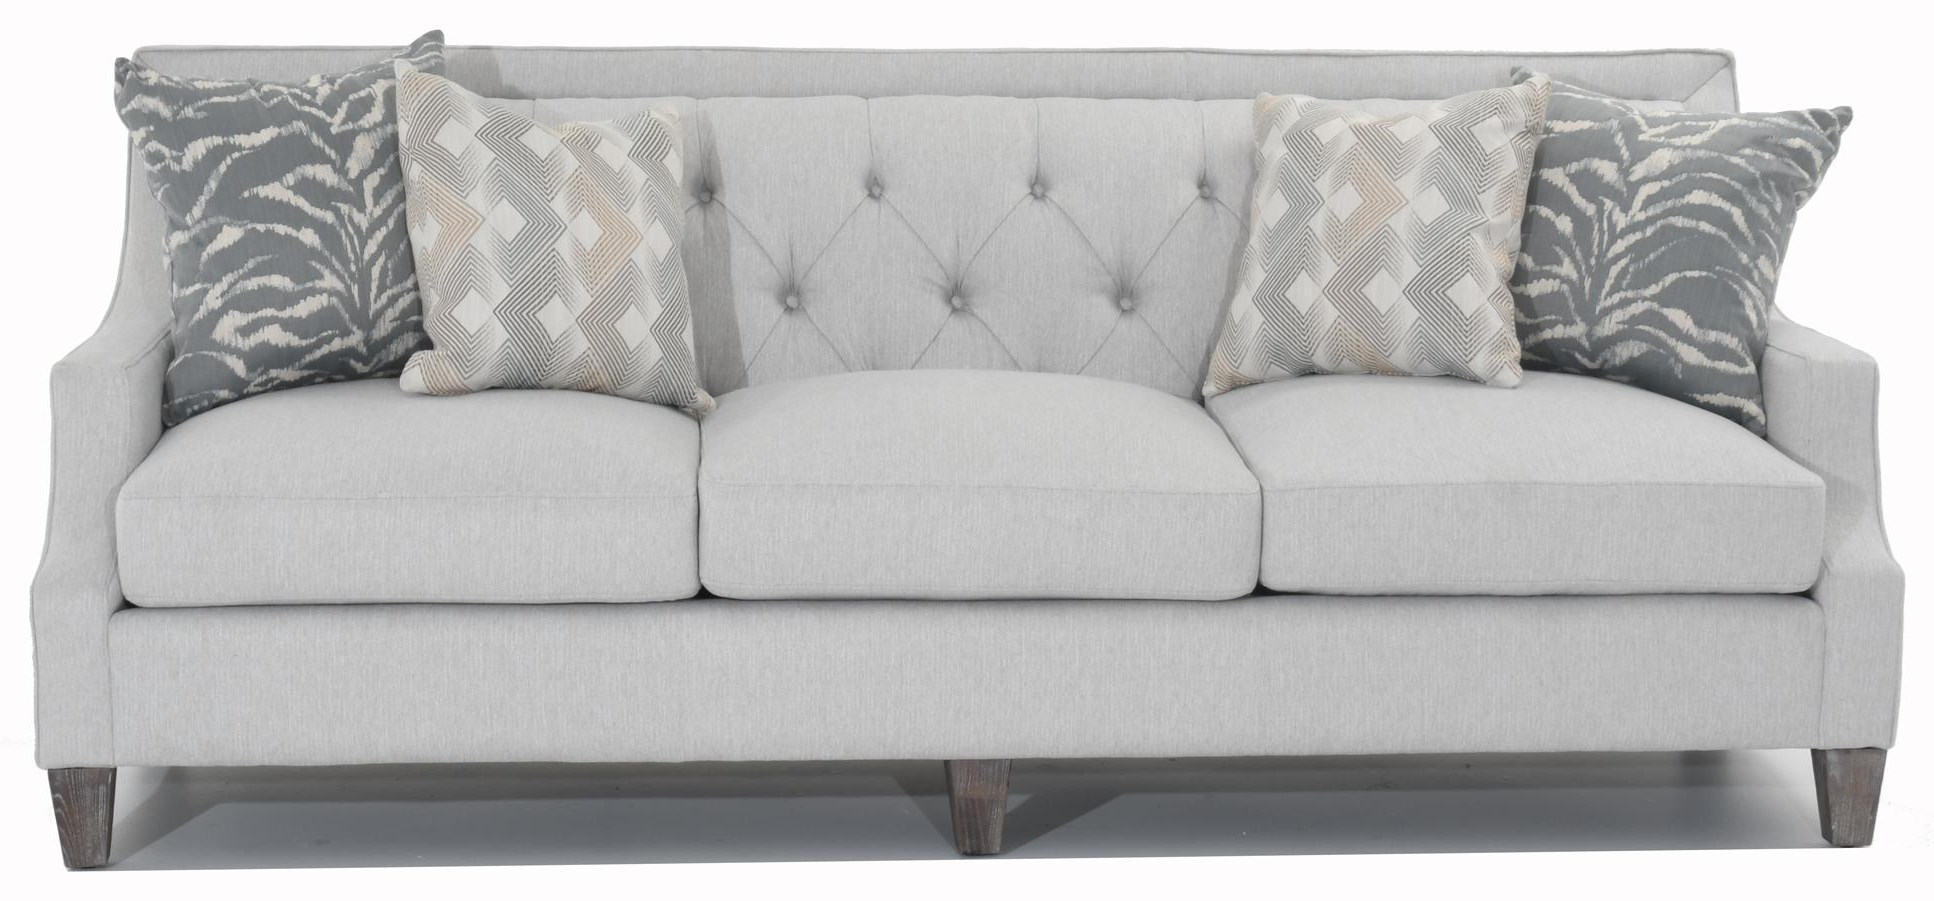 Drew Tufted Sofa by Aria Designs at Baer's Furniture